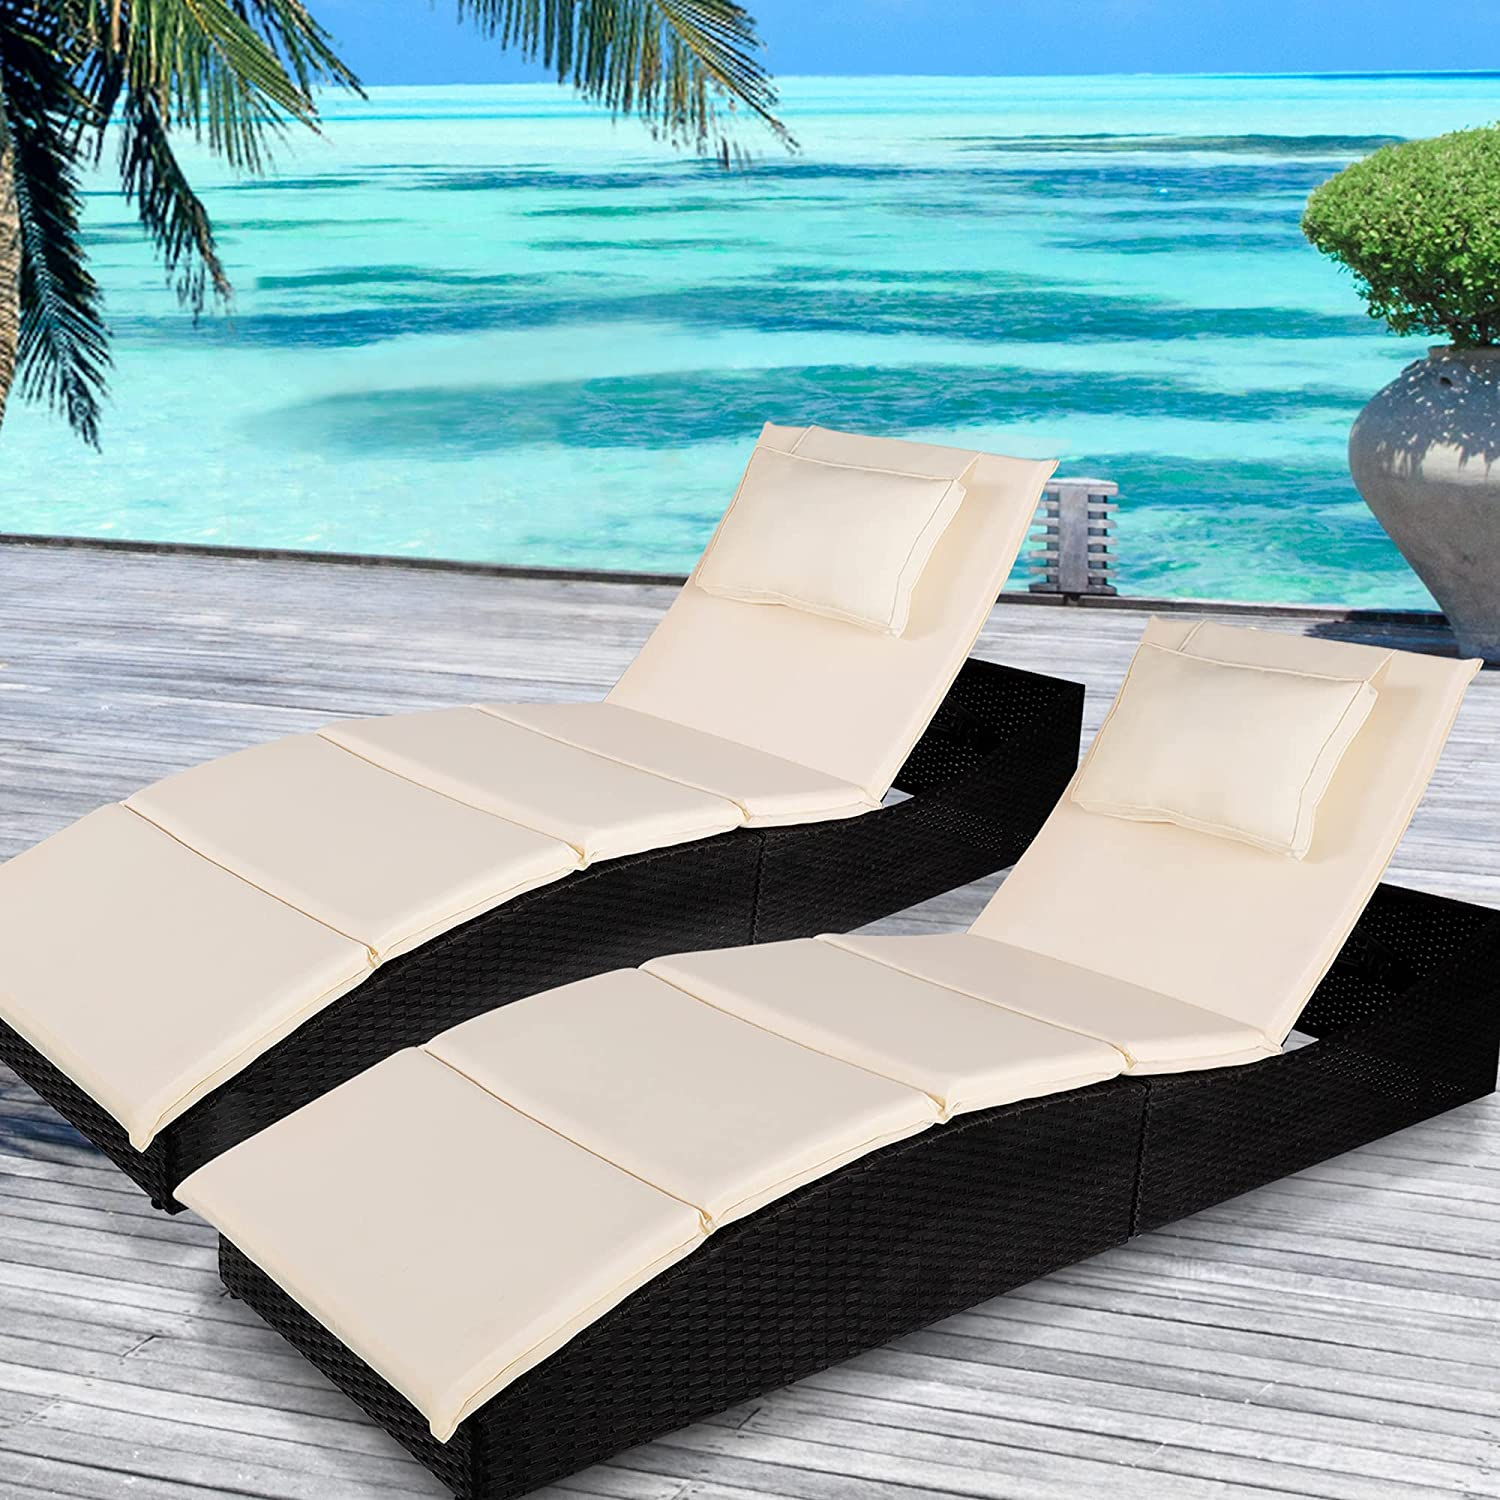 Spasm price KGOPK Folding Pool Lounge Chair Set of Adjustable Pat Outdoor Super special price 2